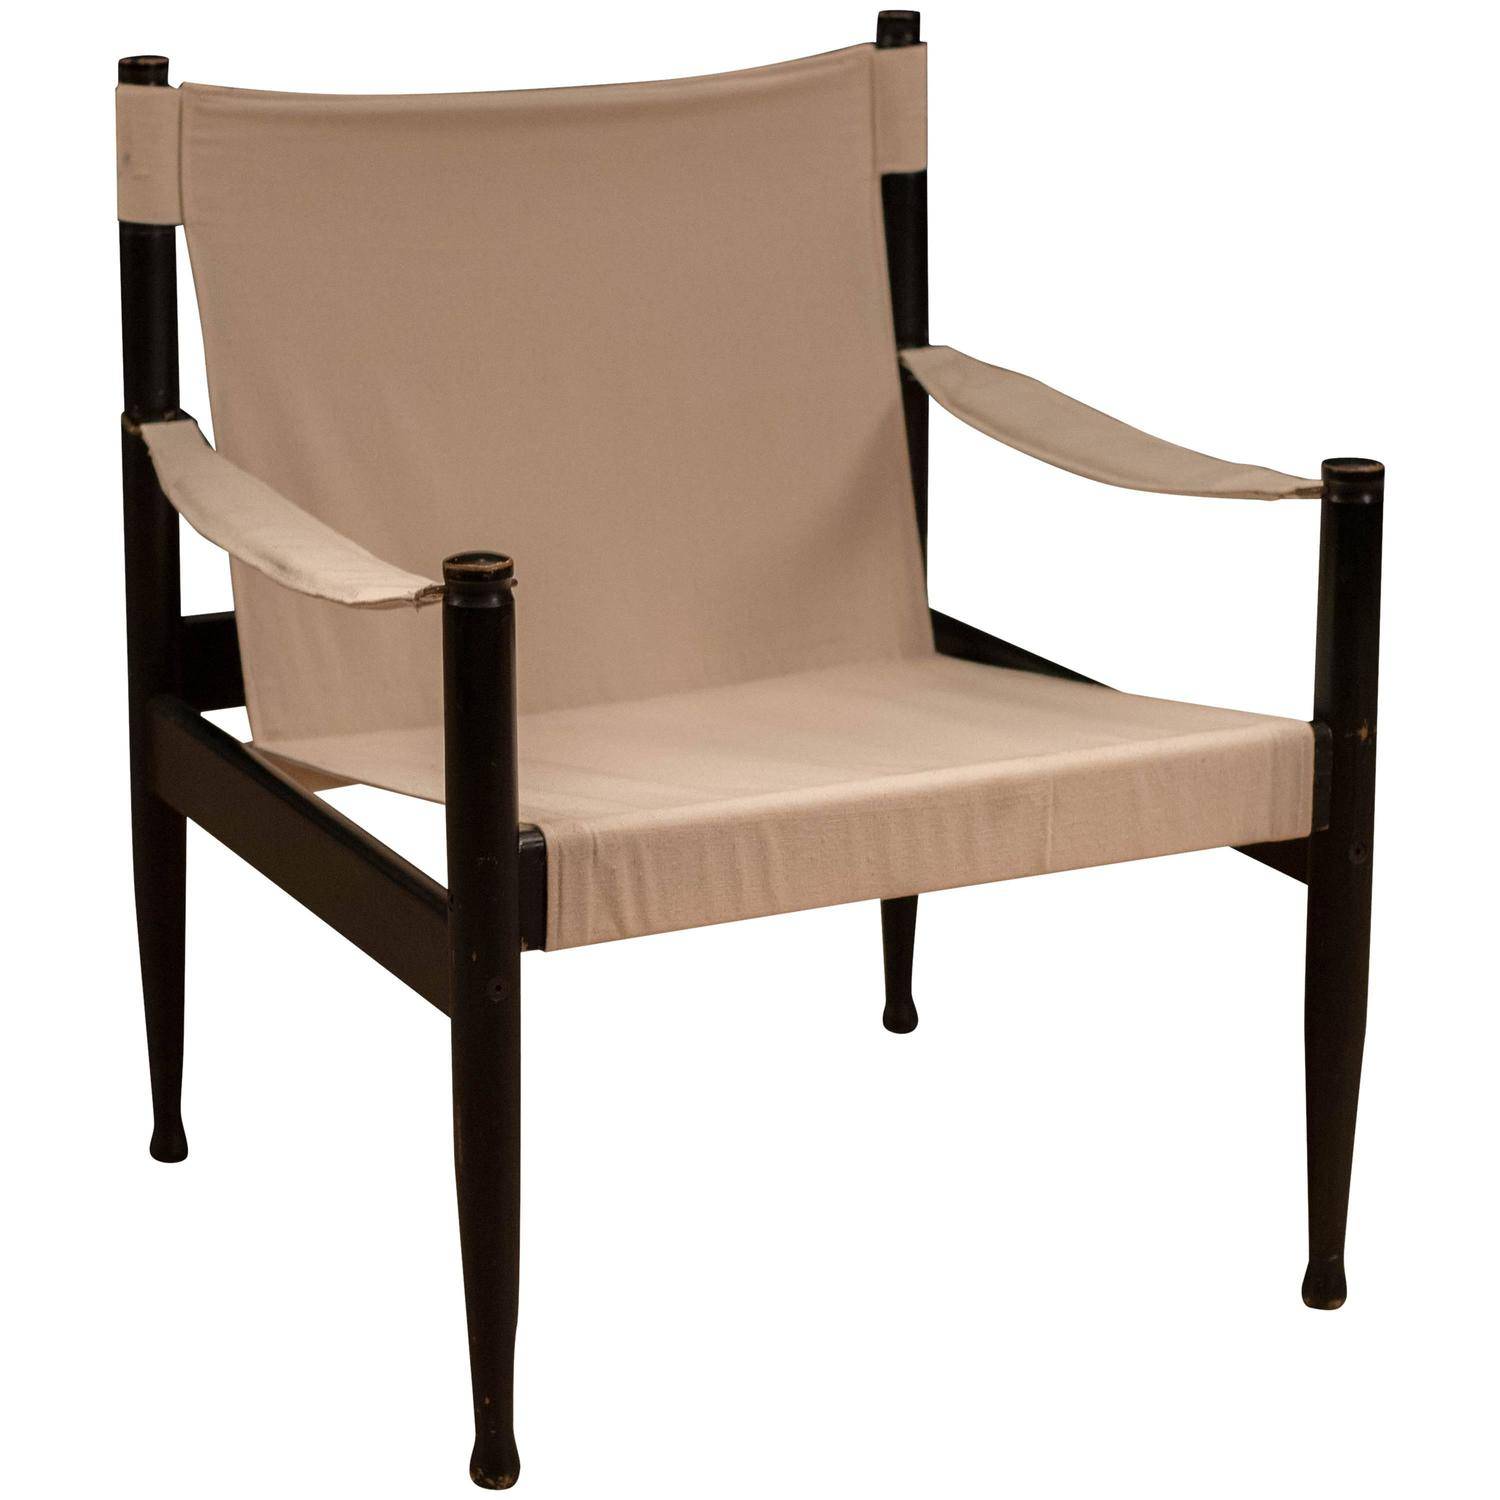 Mid Century Erik Worts Safari Chair For Sale at 1stdibs